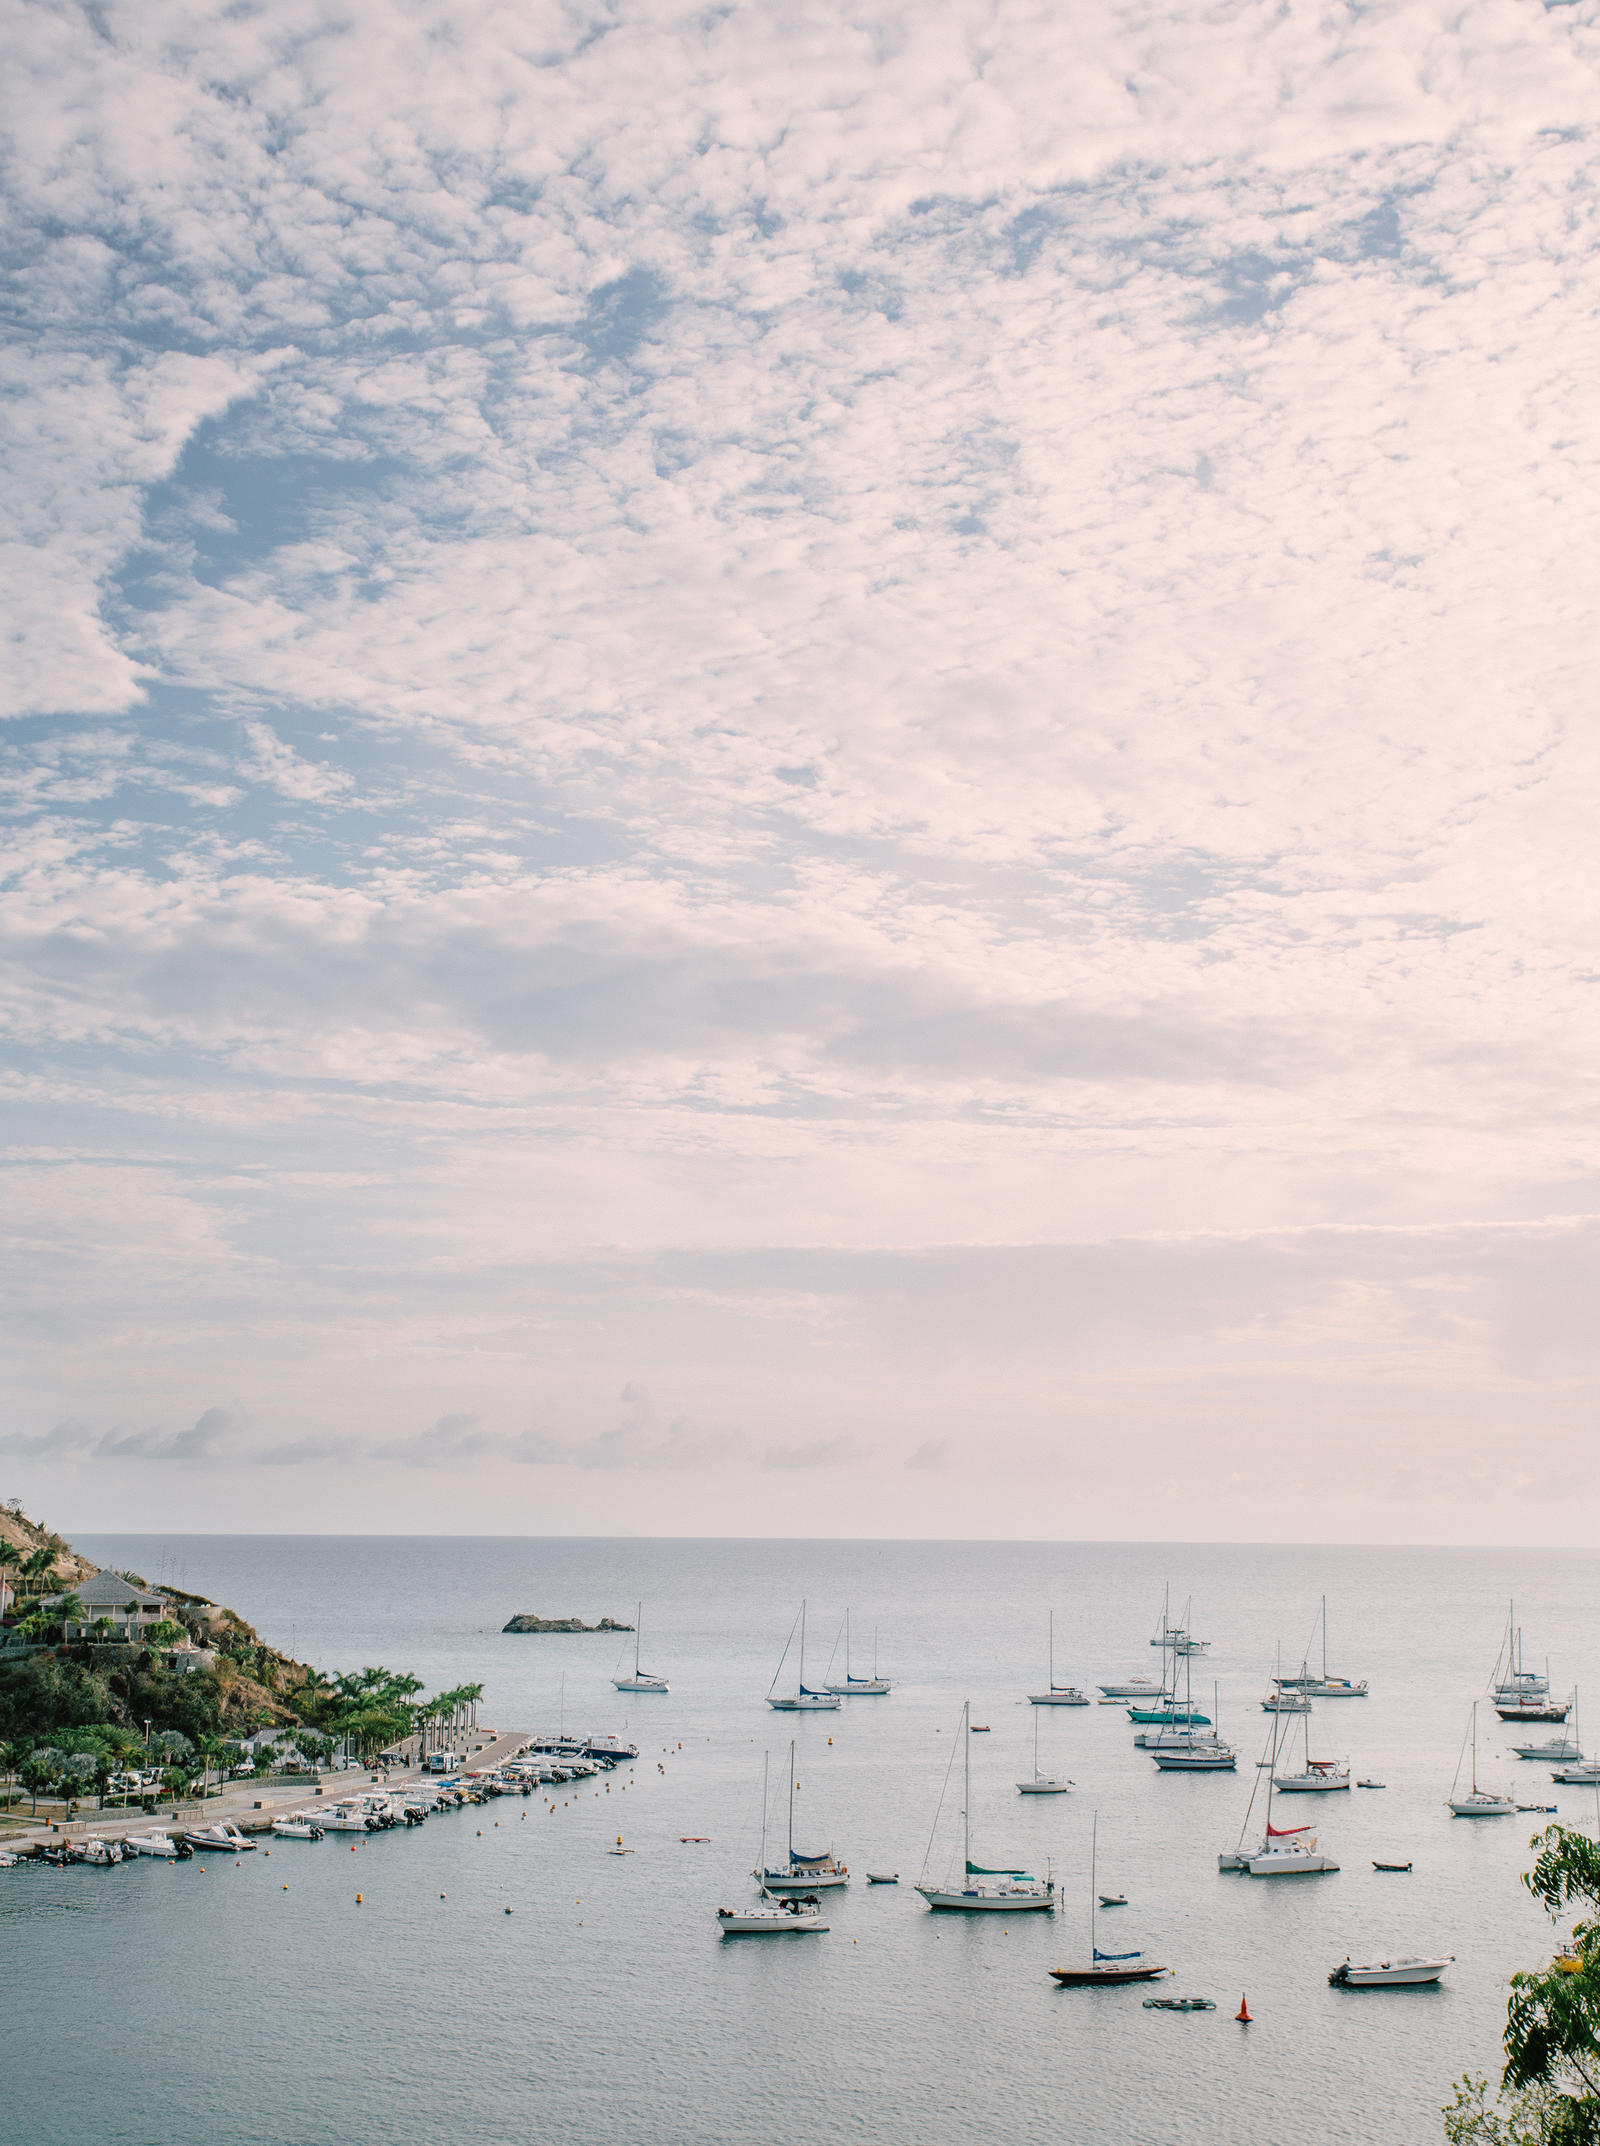 Atlanta Lifestyle Photography | A view of an ocean bay, dotted with sailboats at anchor.